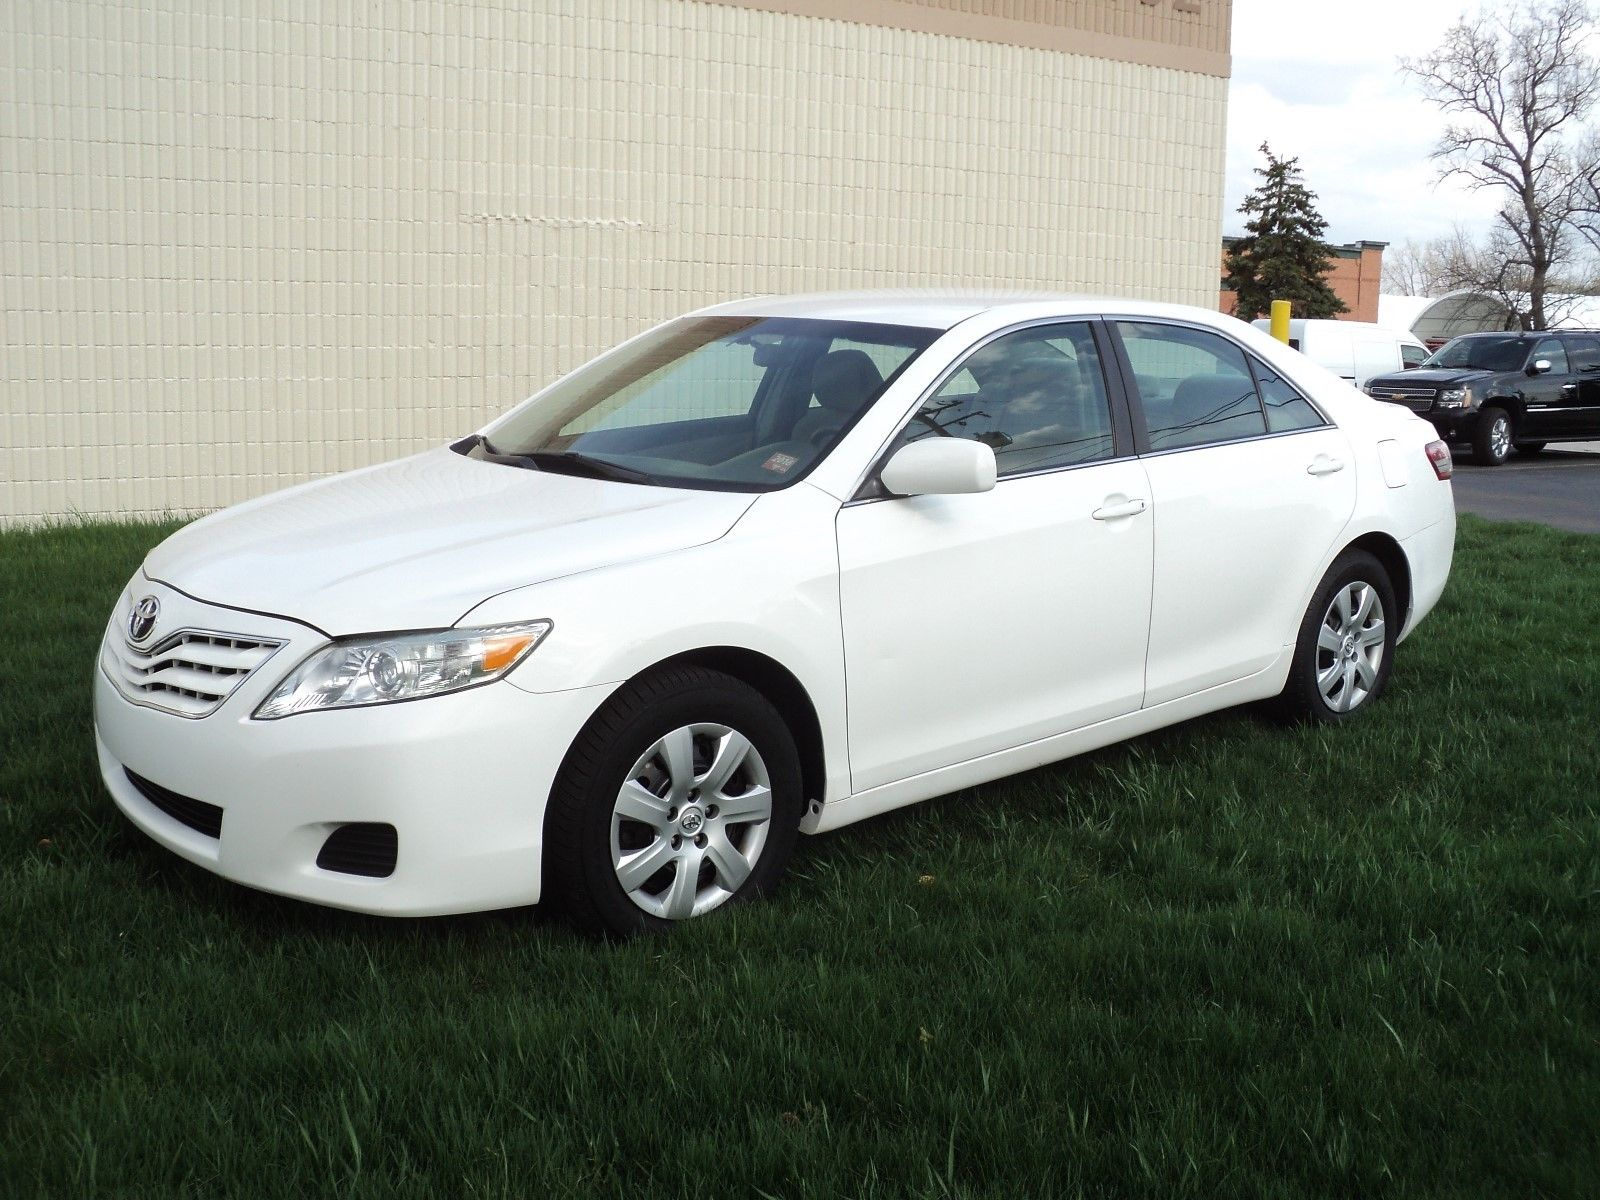 Toyota Camry 2010 has no problems